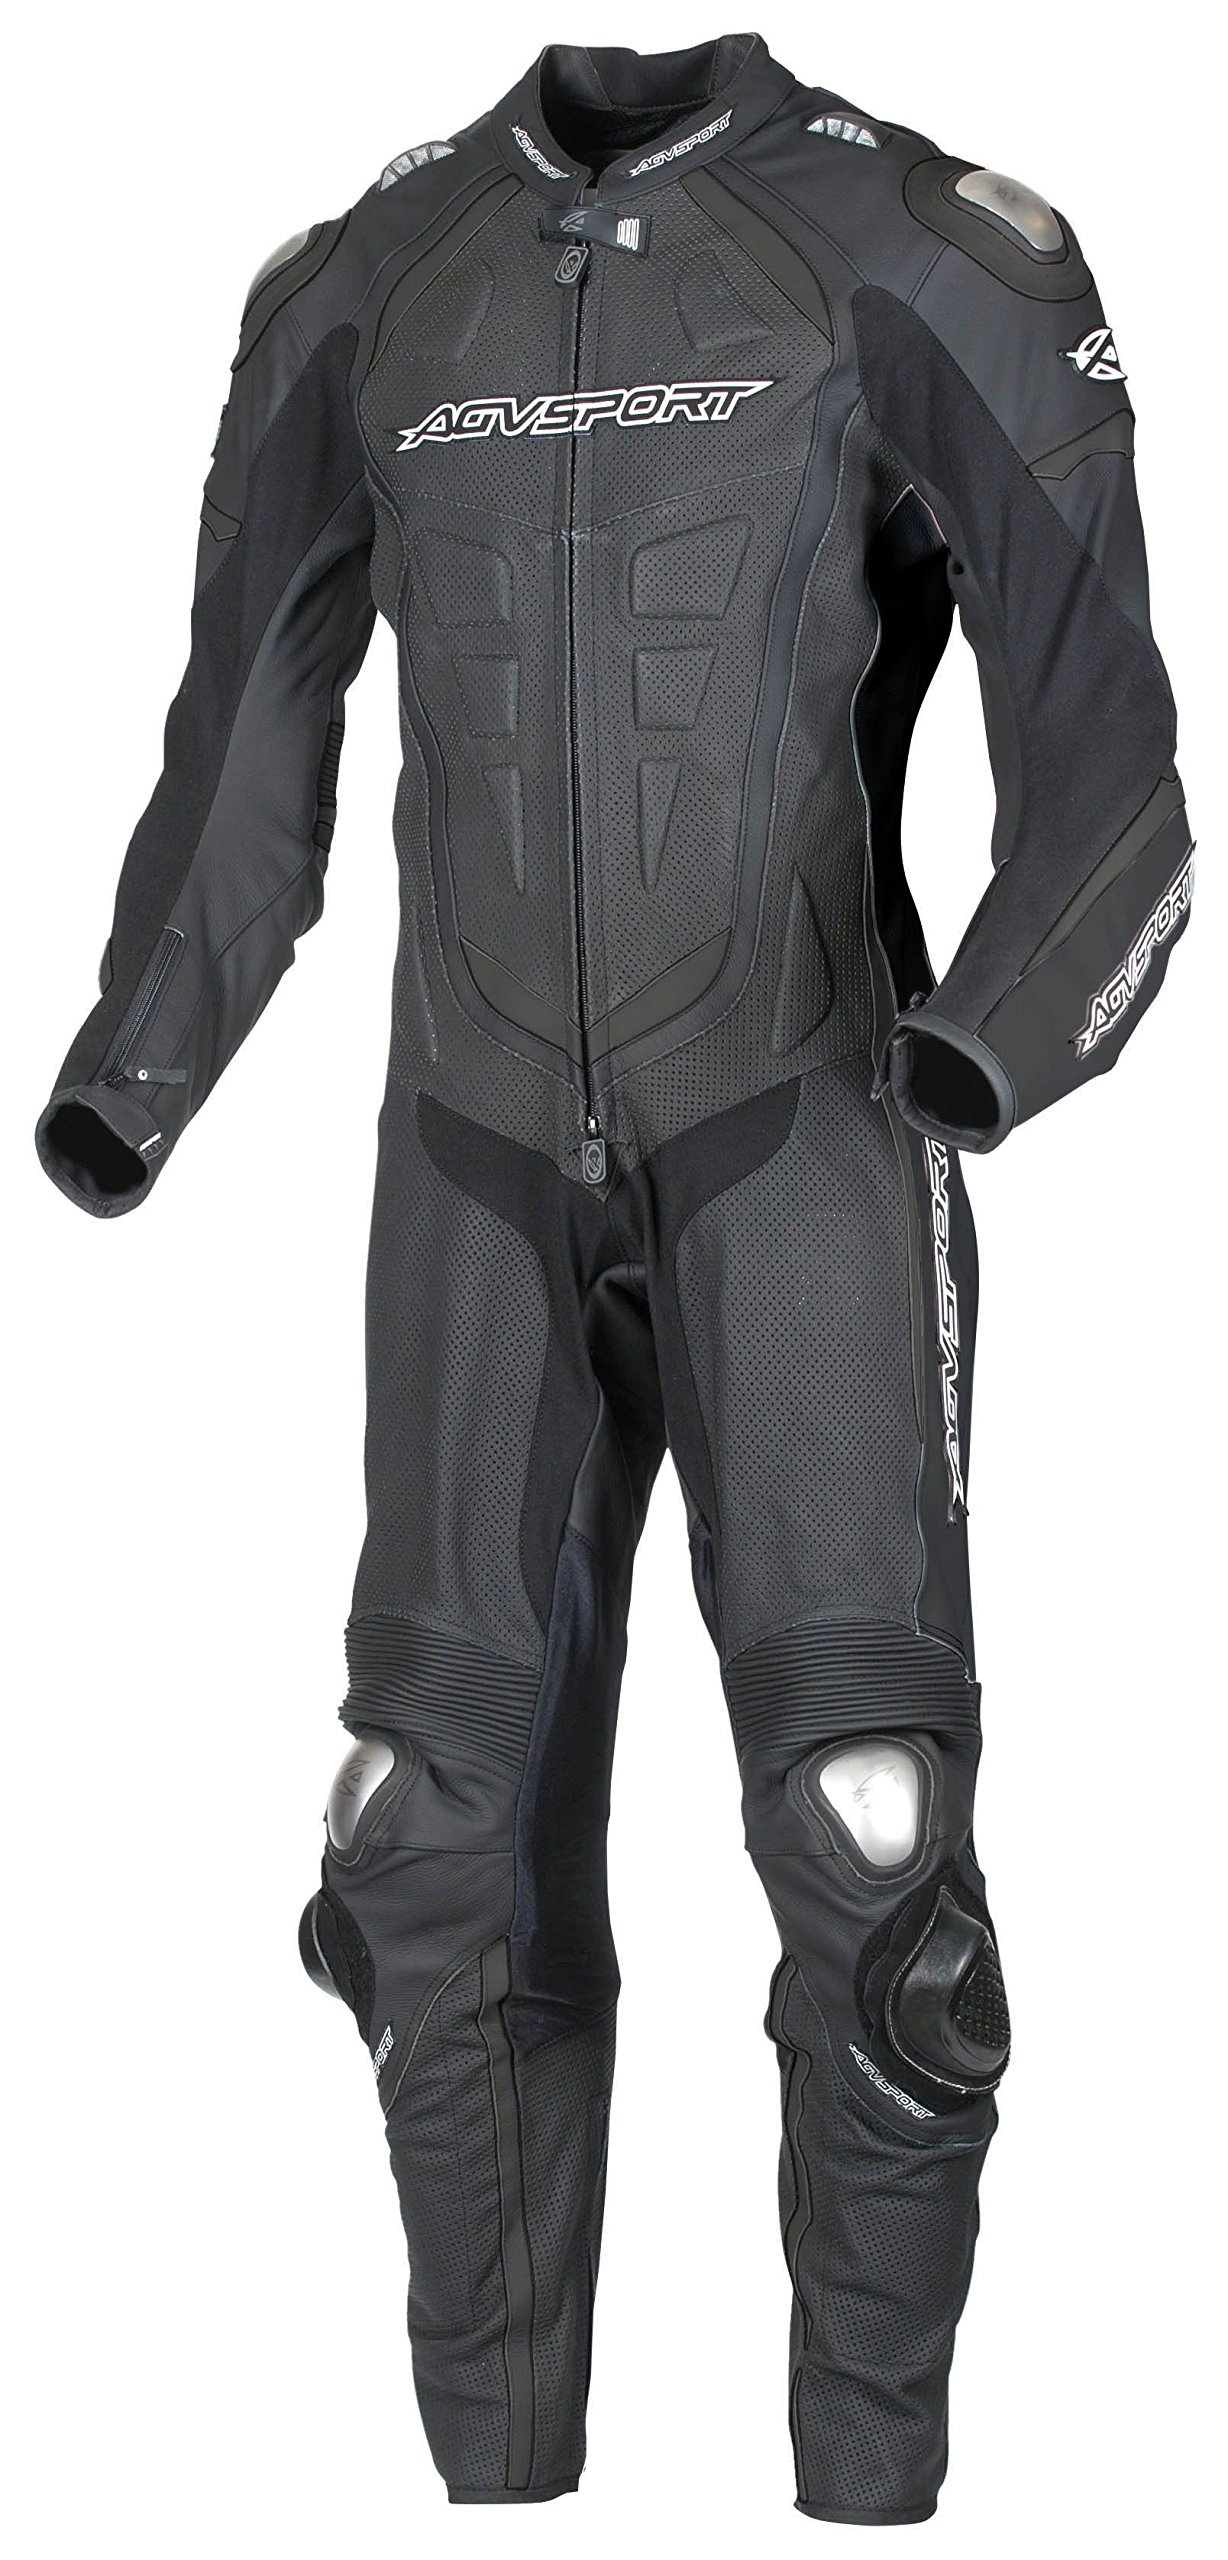 AGV Sport 1-Piece ''Podium'' Leather Race Suit (Black) - Size 48 US / 58 EU by AGV SPORT MOTORCYCLE LEATHERS